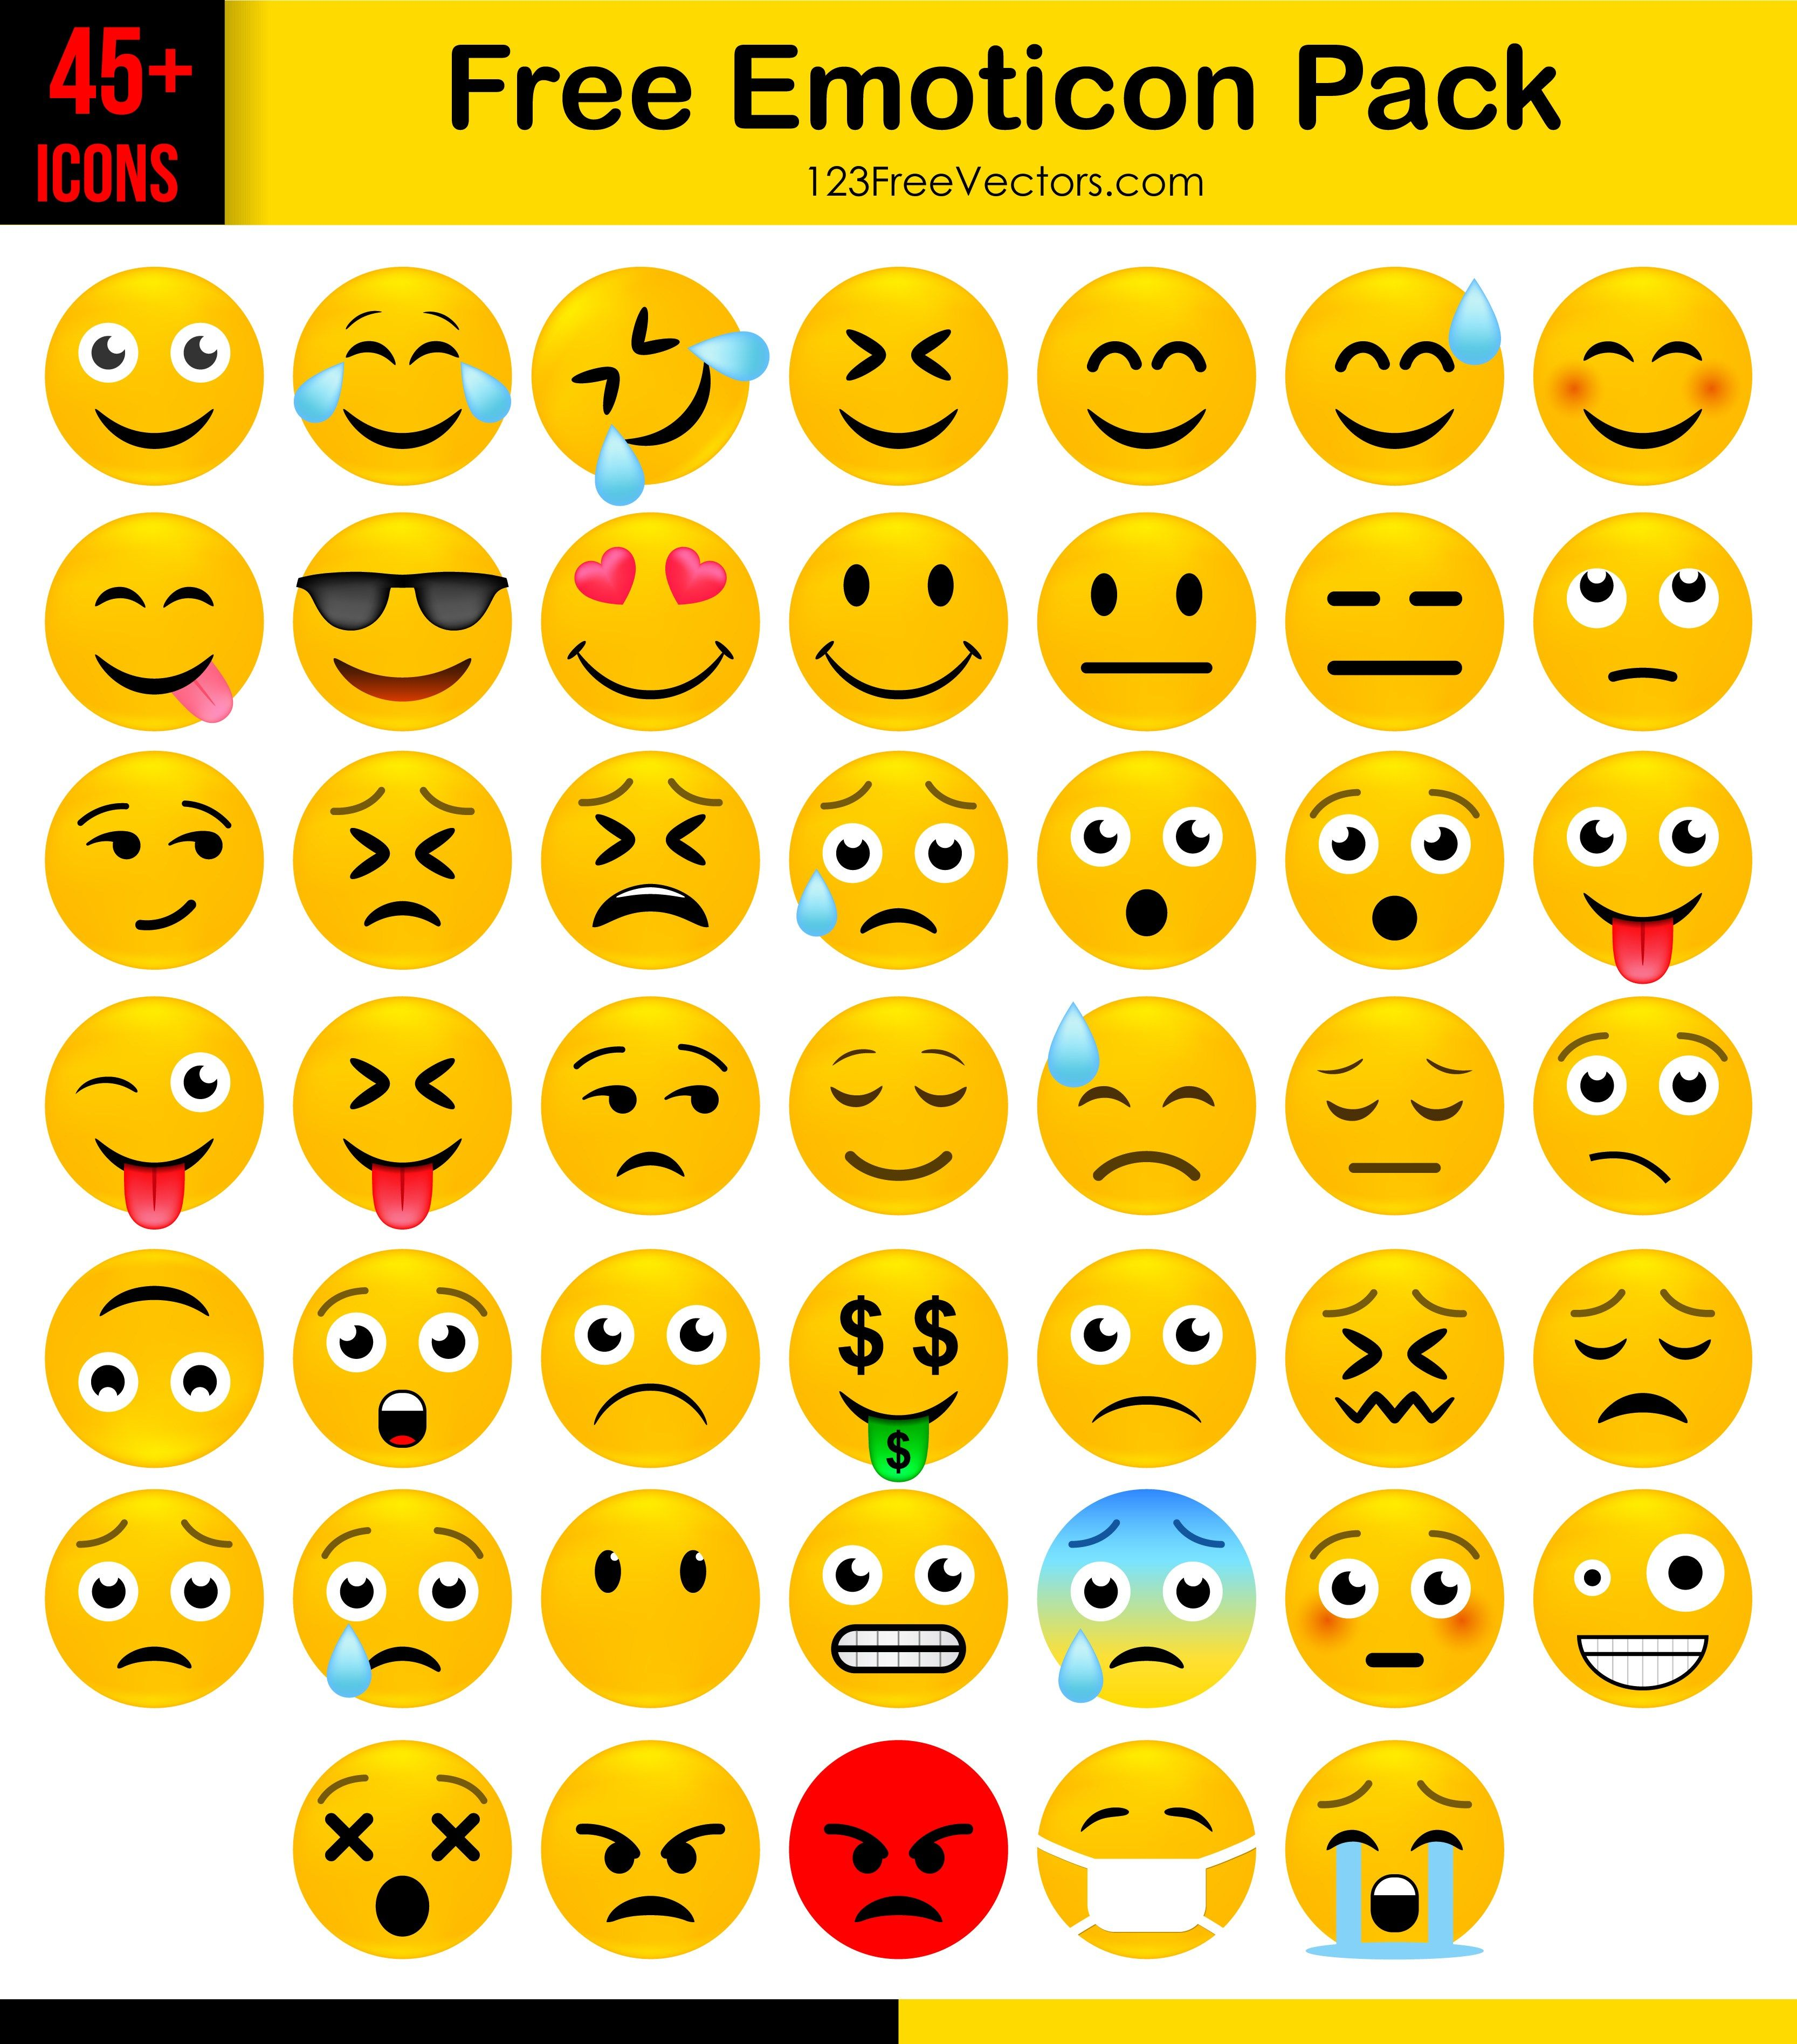 Free Emoticon Icons Pack Download Free emoji, Emoticon